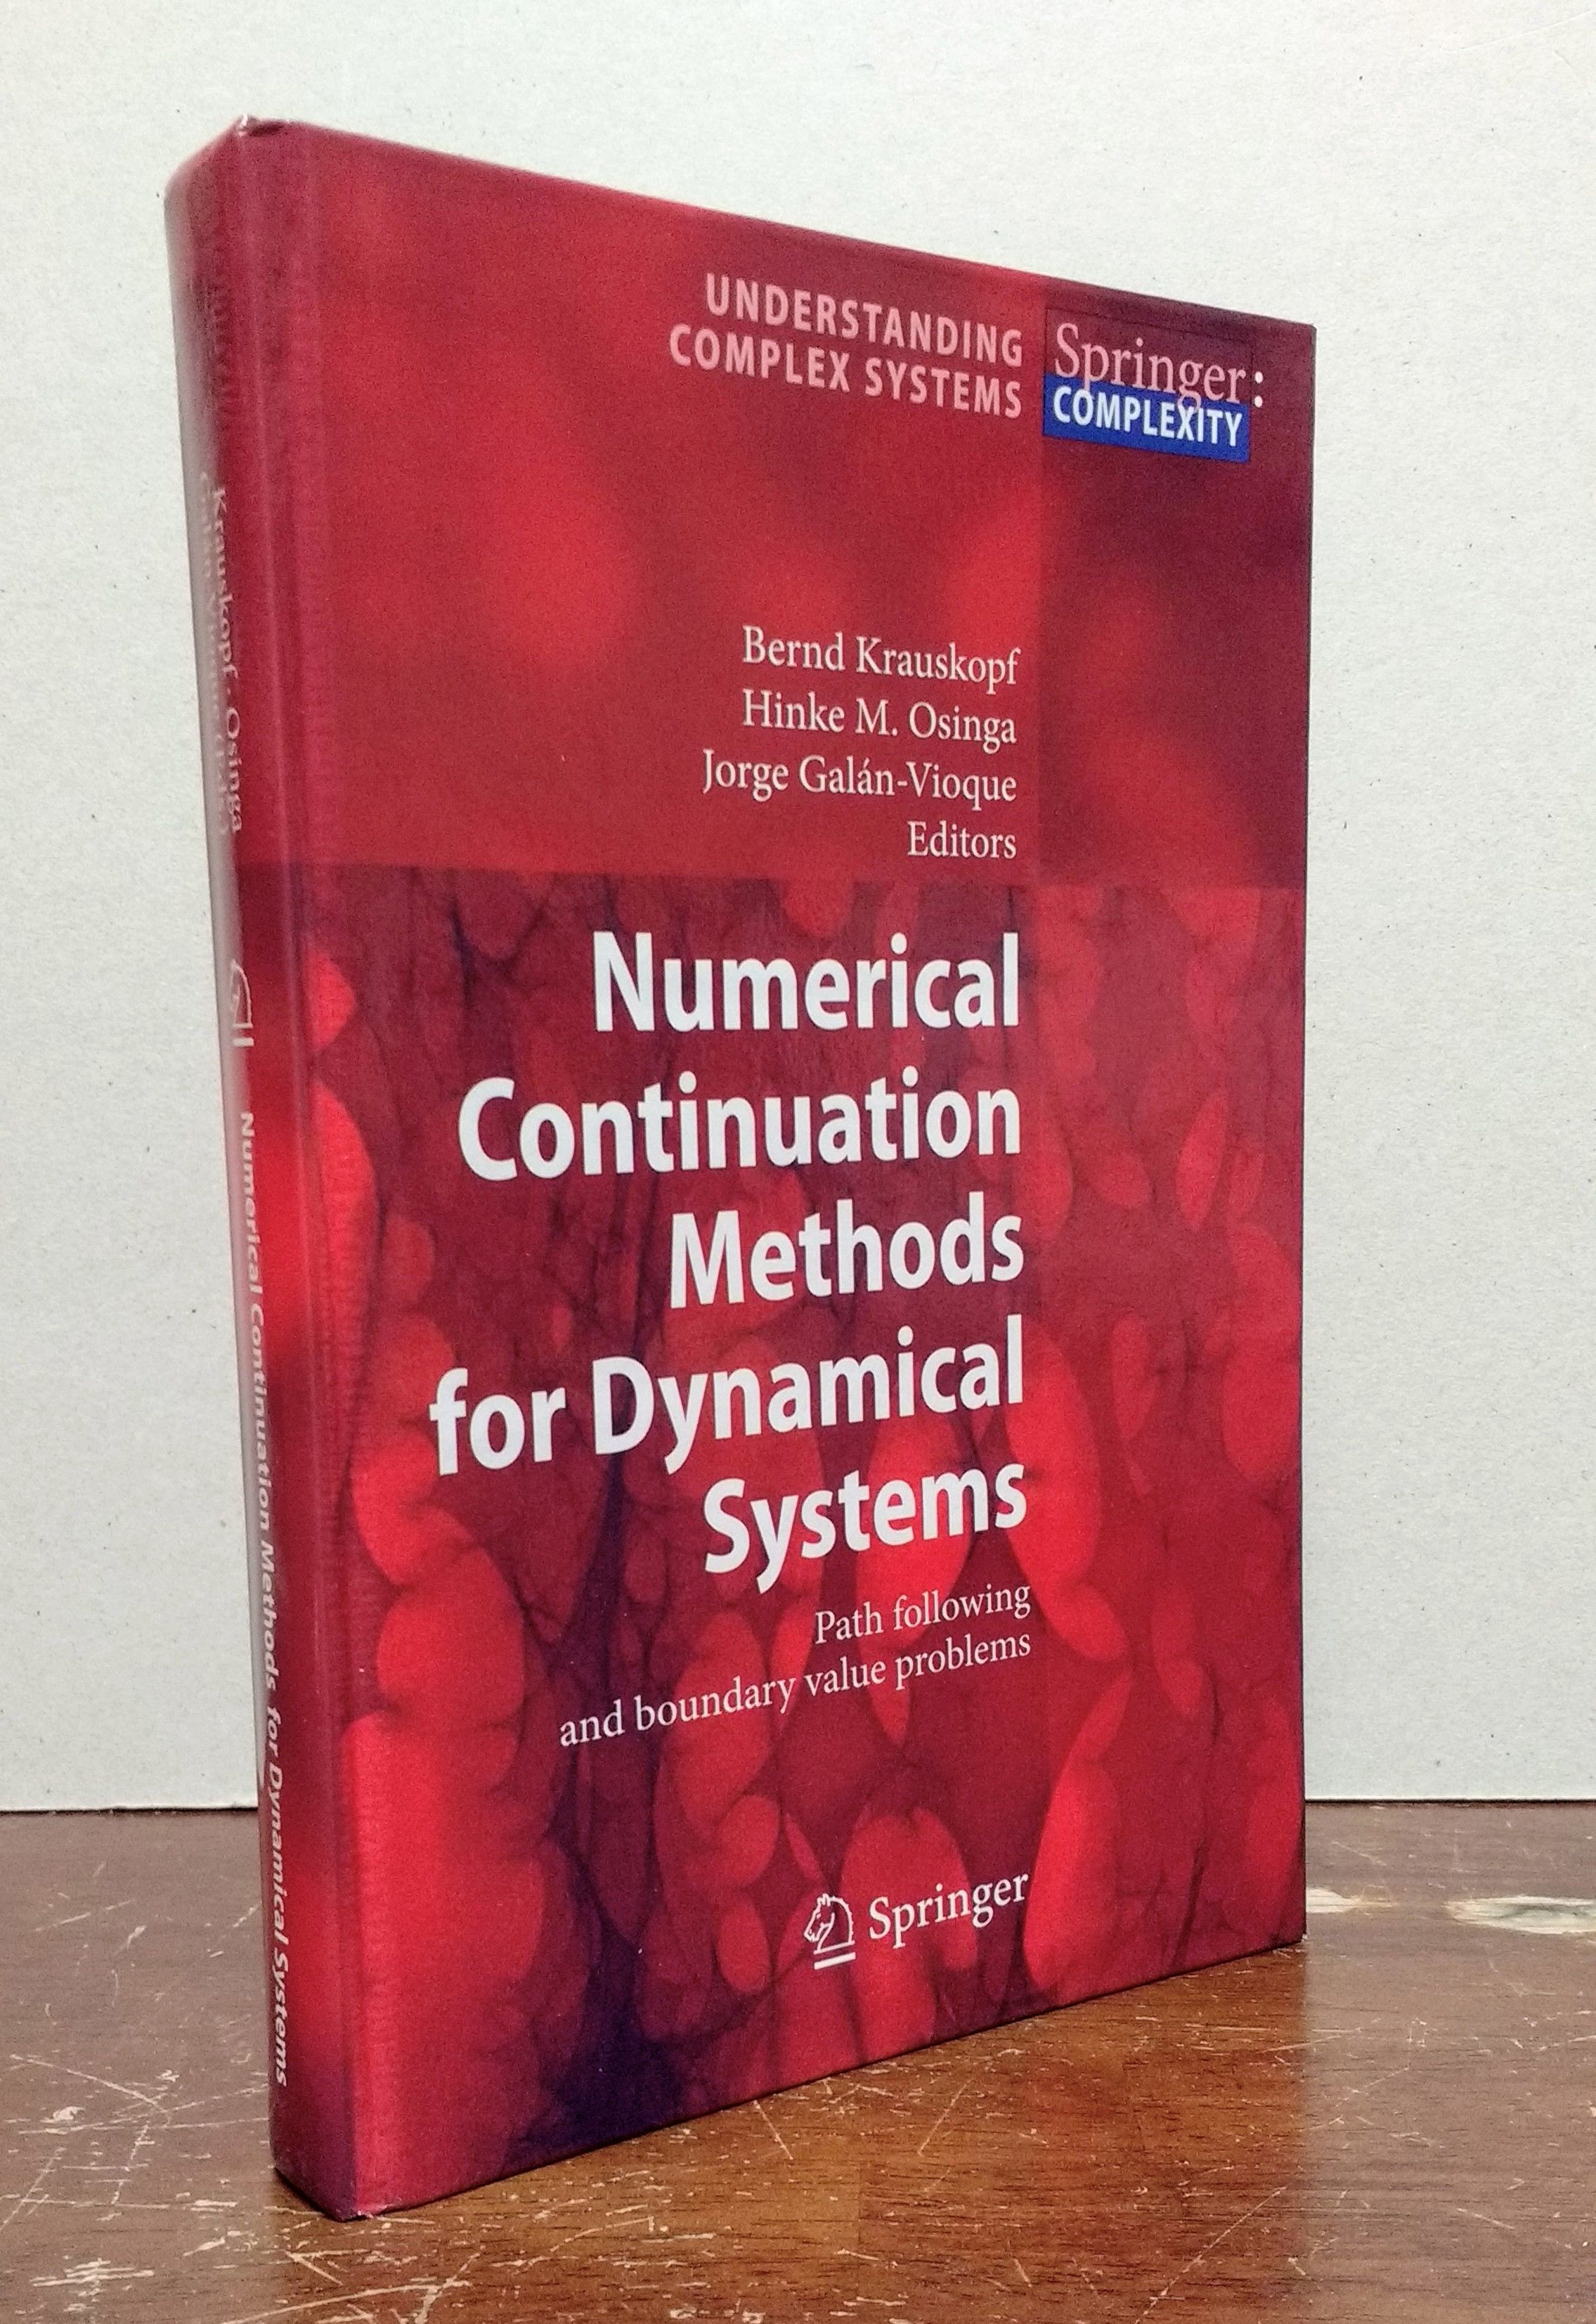 Numerical Continuation Methods for Dynamical Systems: Path Following and Boundary Value Problems